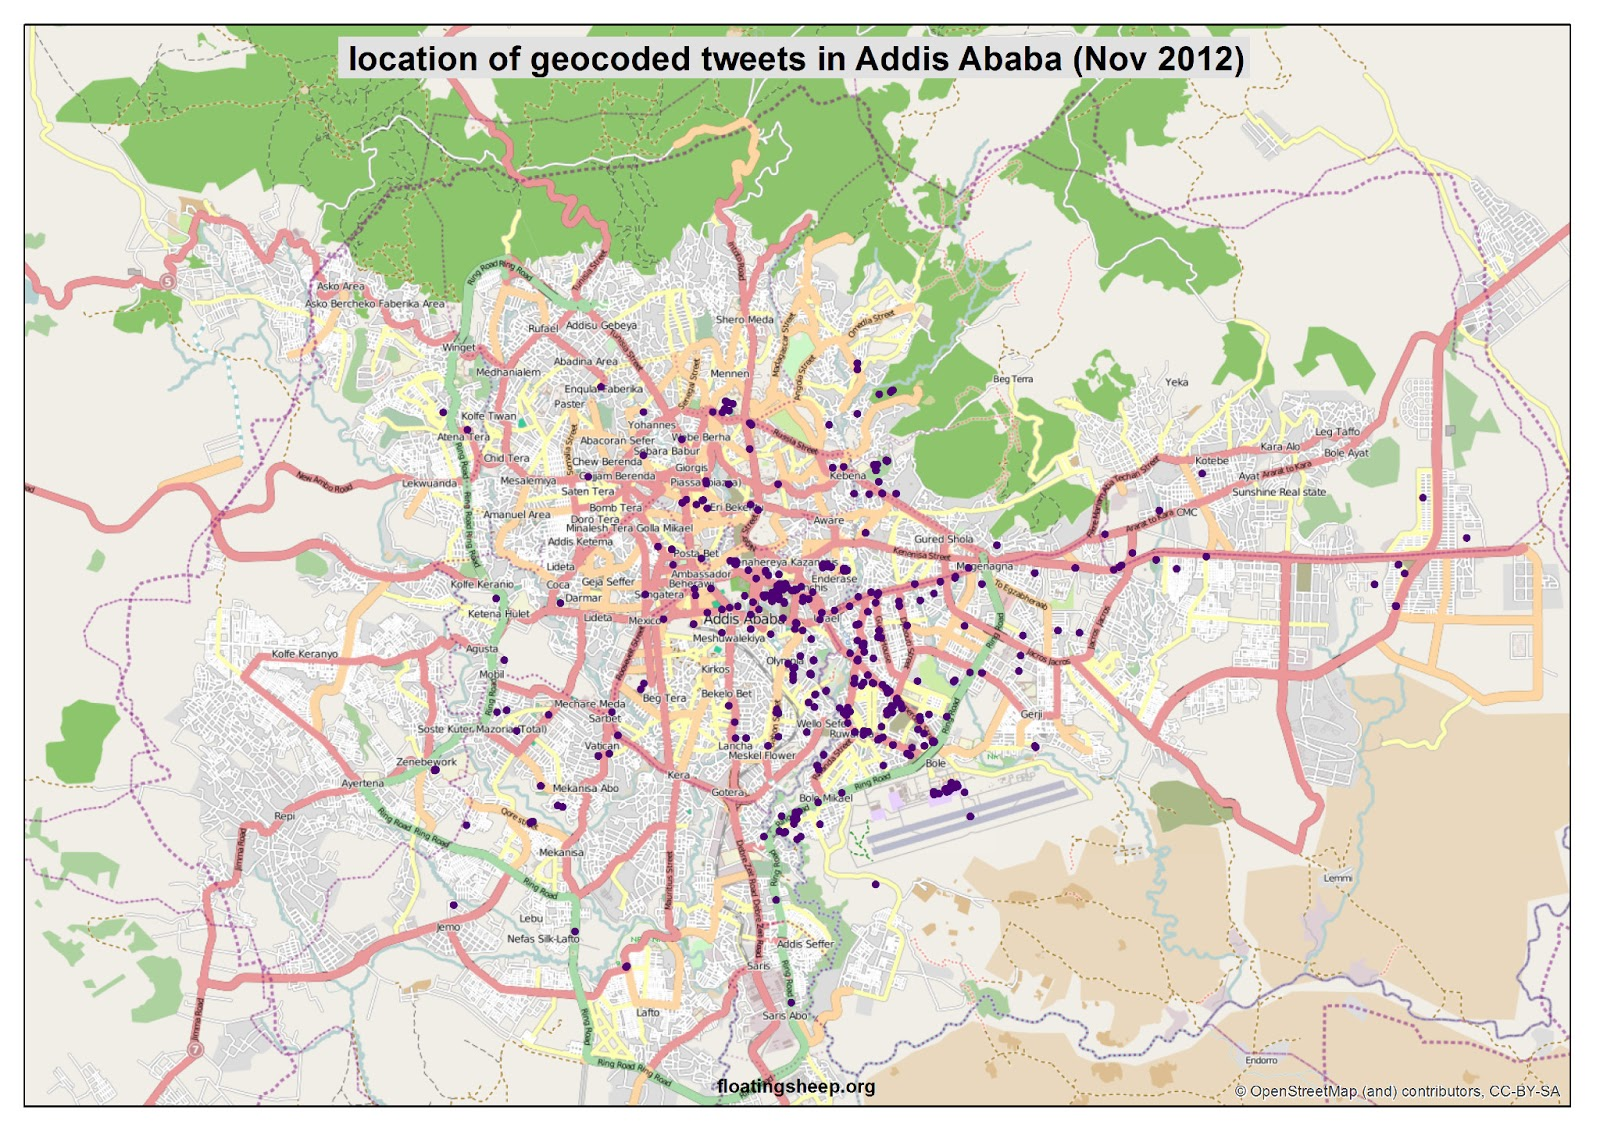 floatingsheep: The Urban Geographies of Tweets in Africa